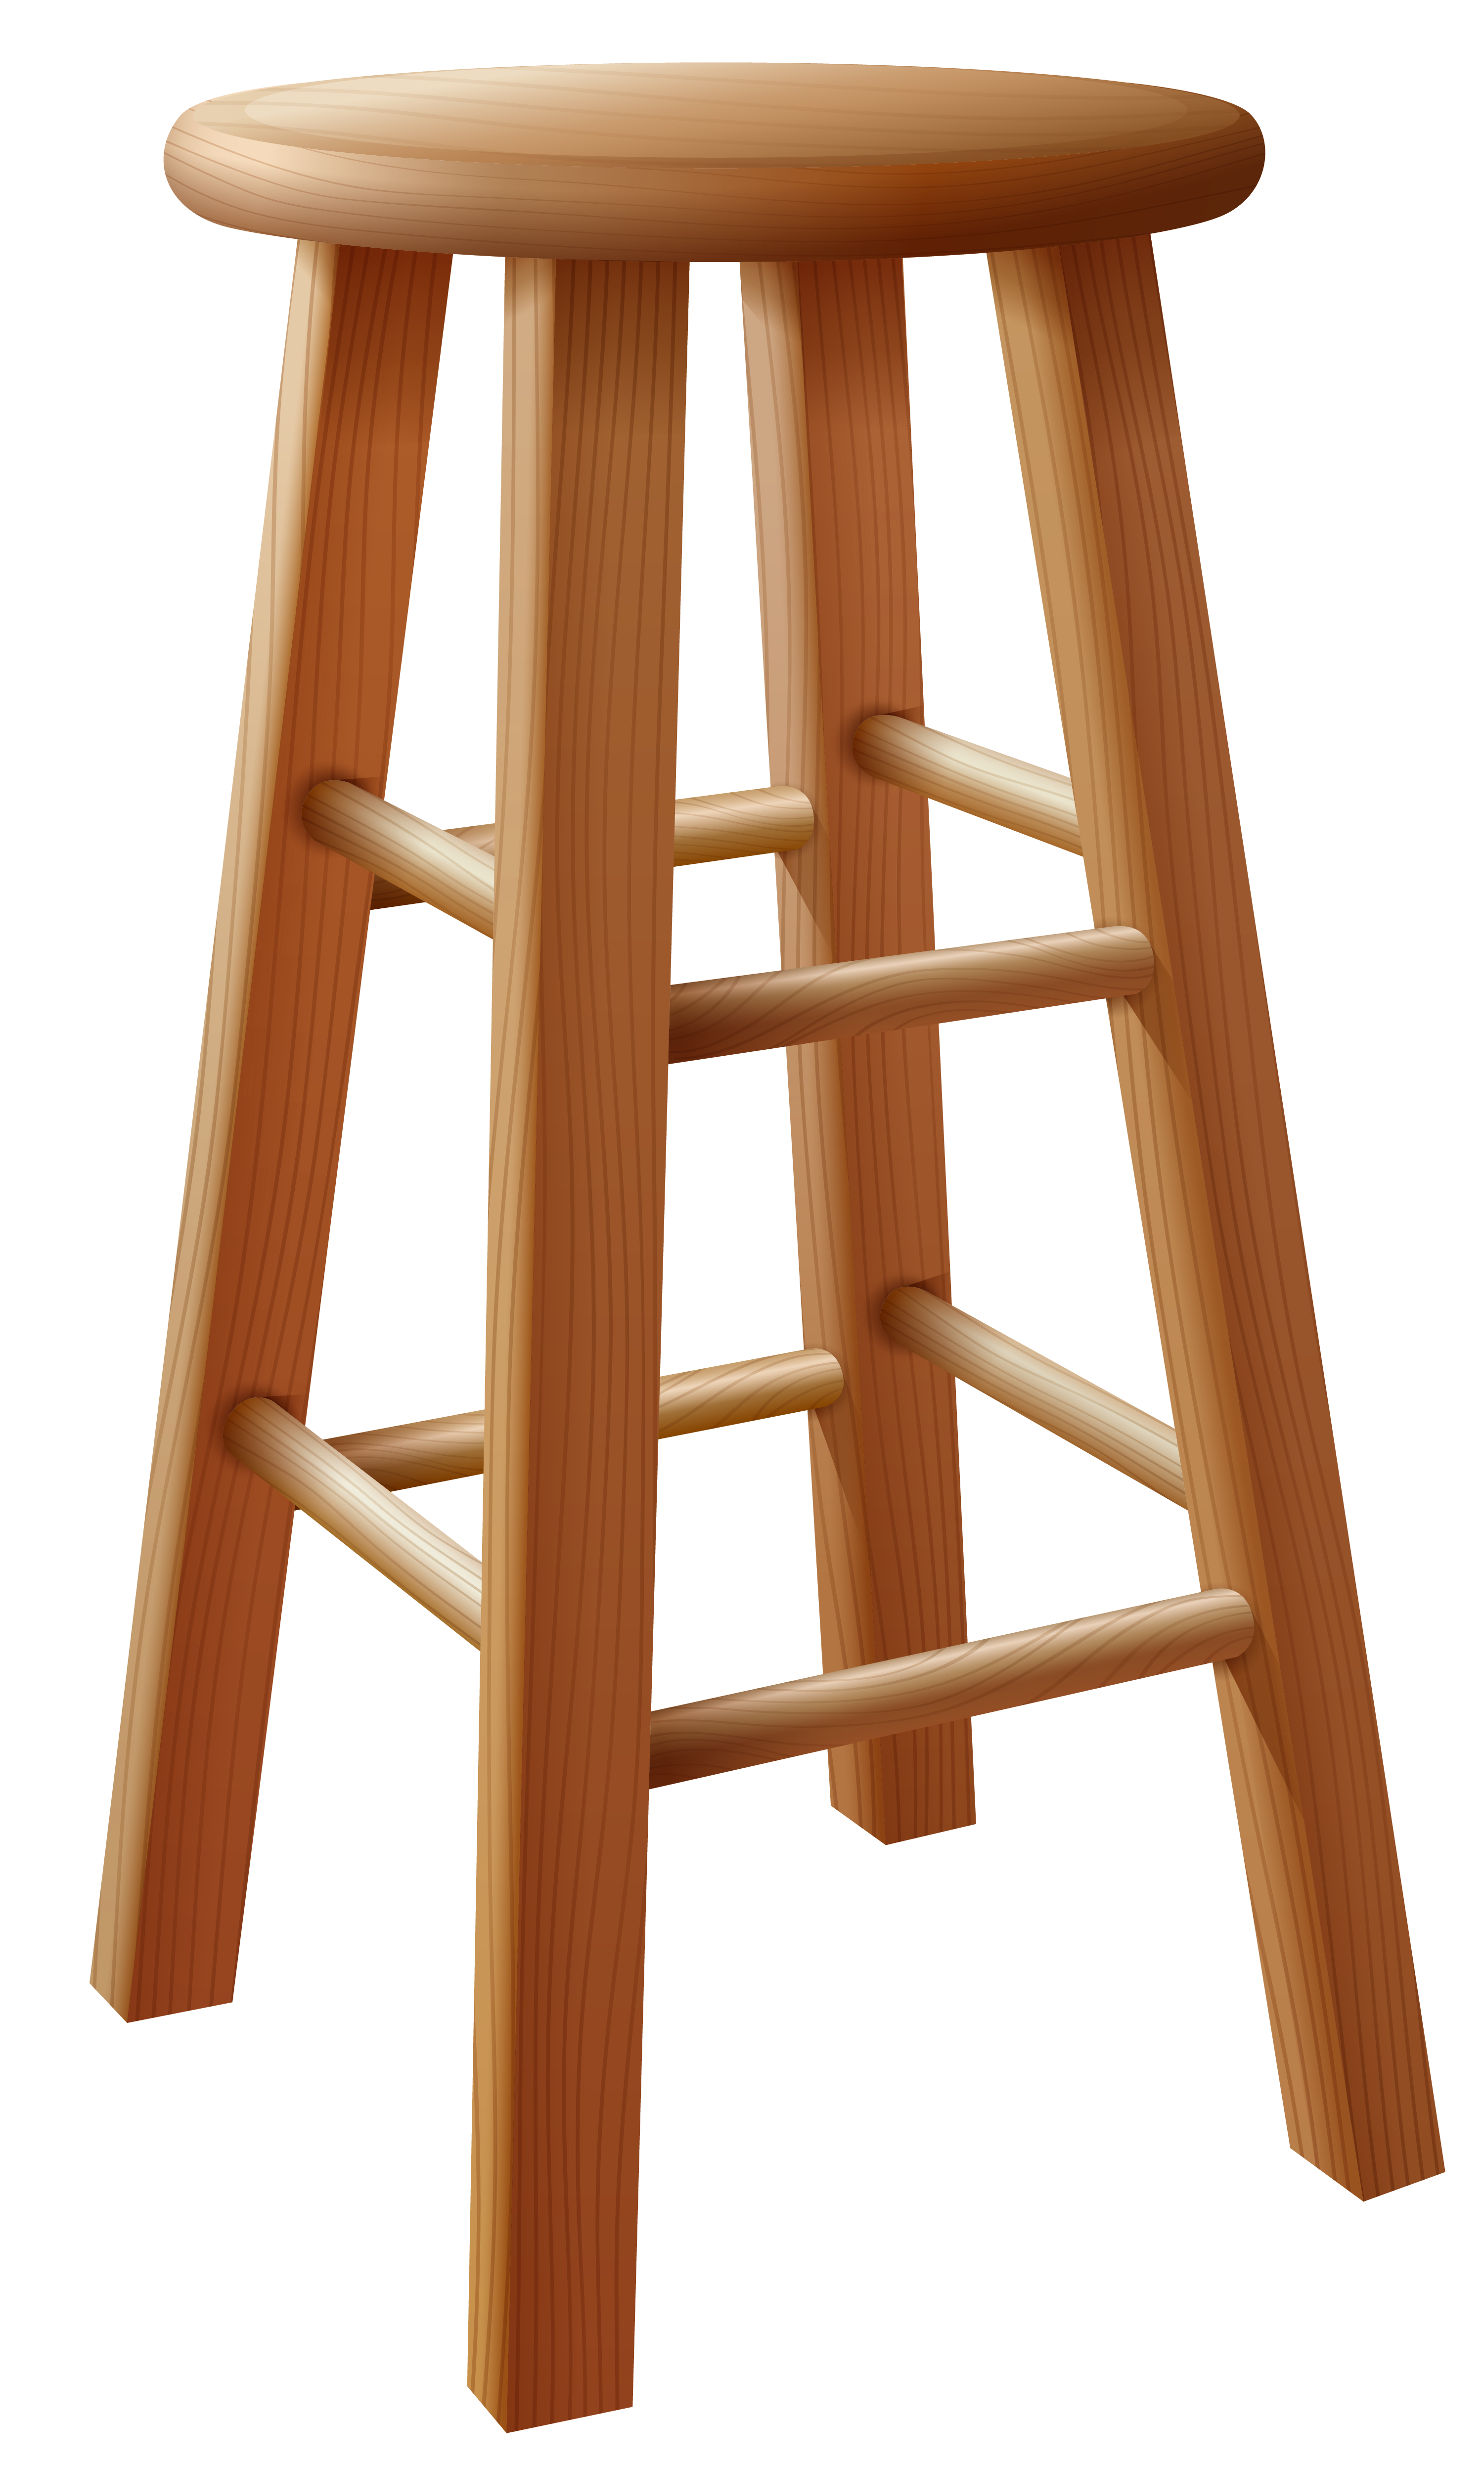 Satools clipart svg stock Bar Stool PNG Image | Gallery Yopriceville - High-Quality ... svg stock